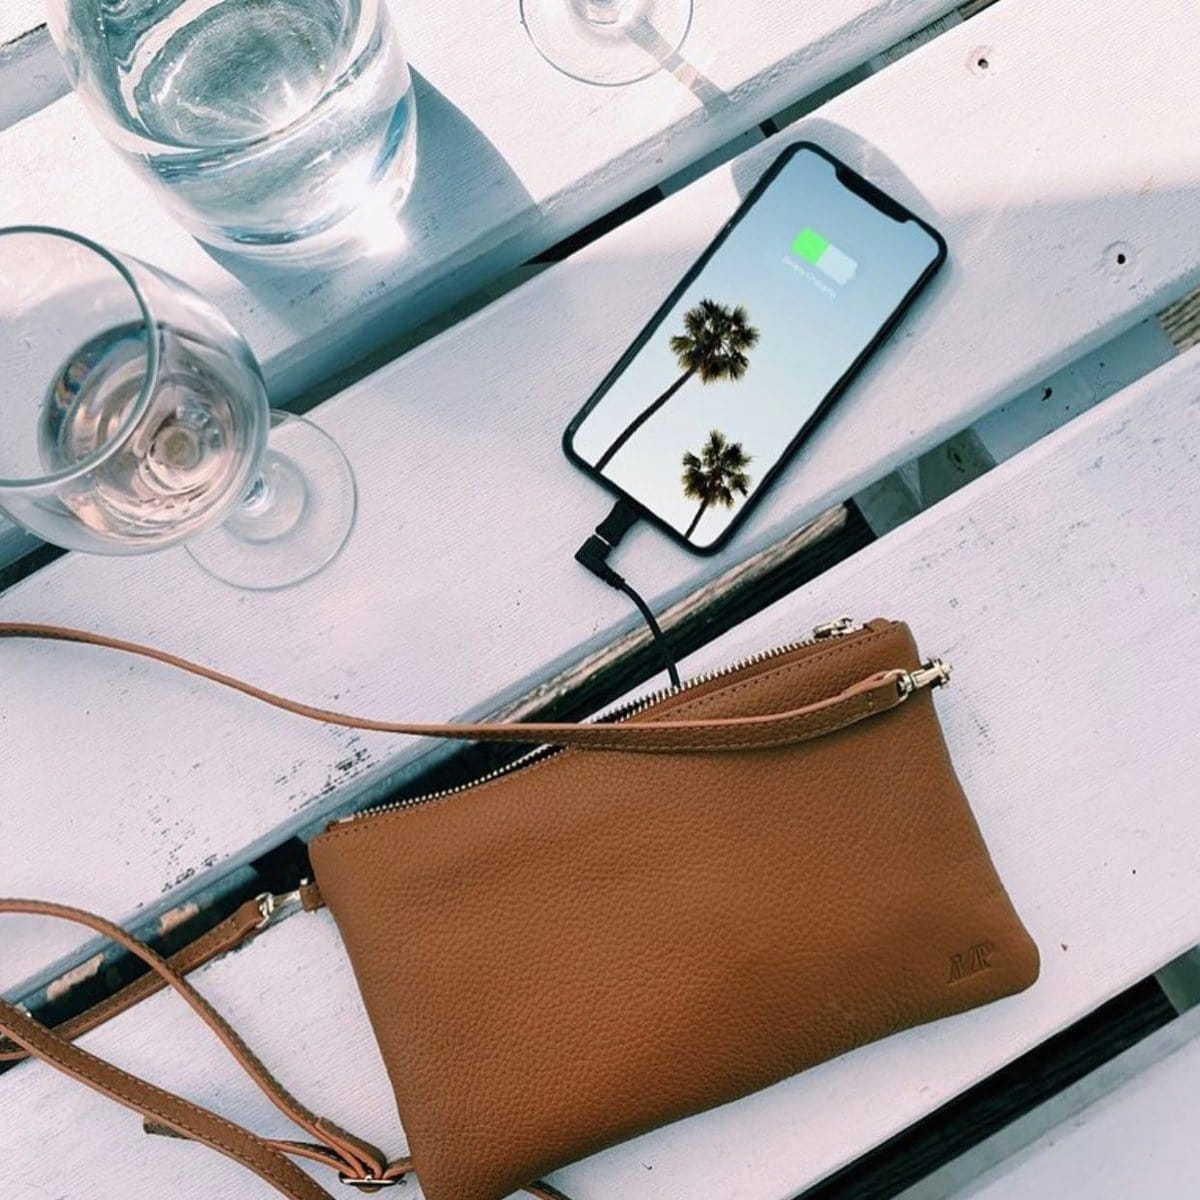 Mighty Purse offers a variety of bags and purses that can charge your phone